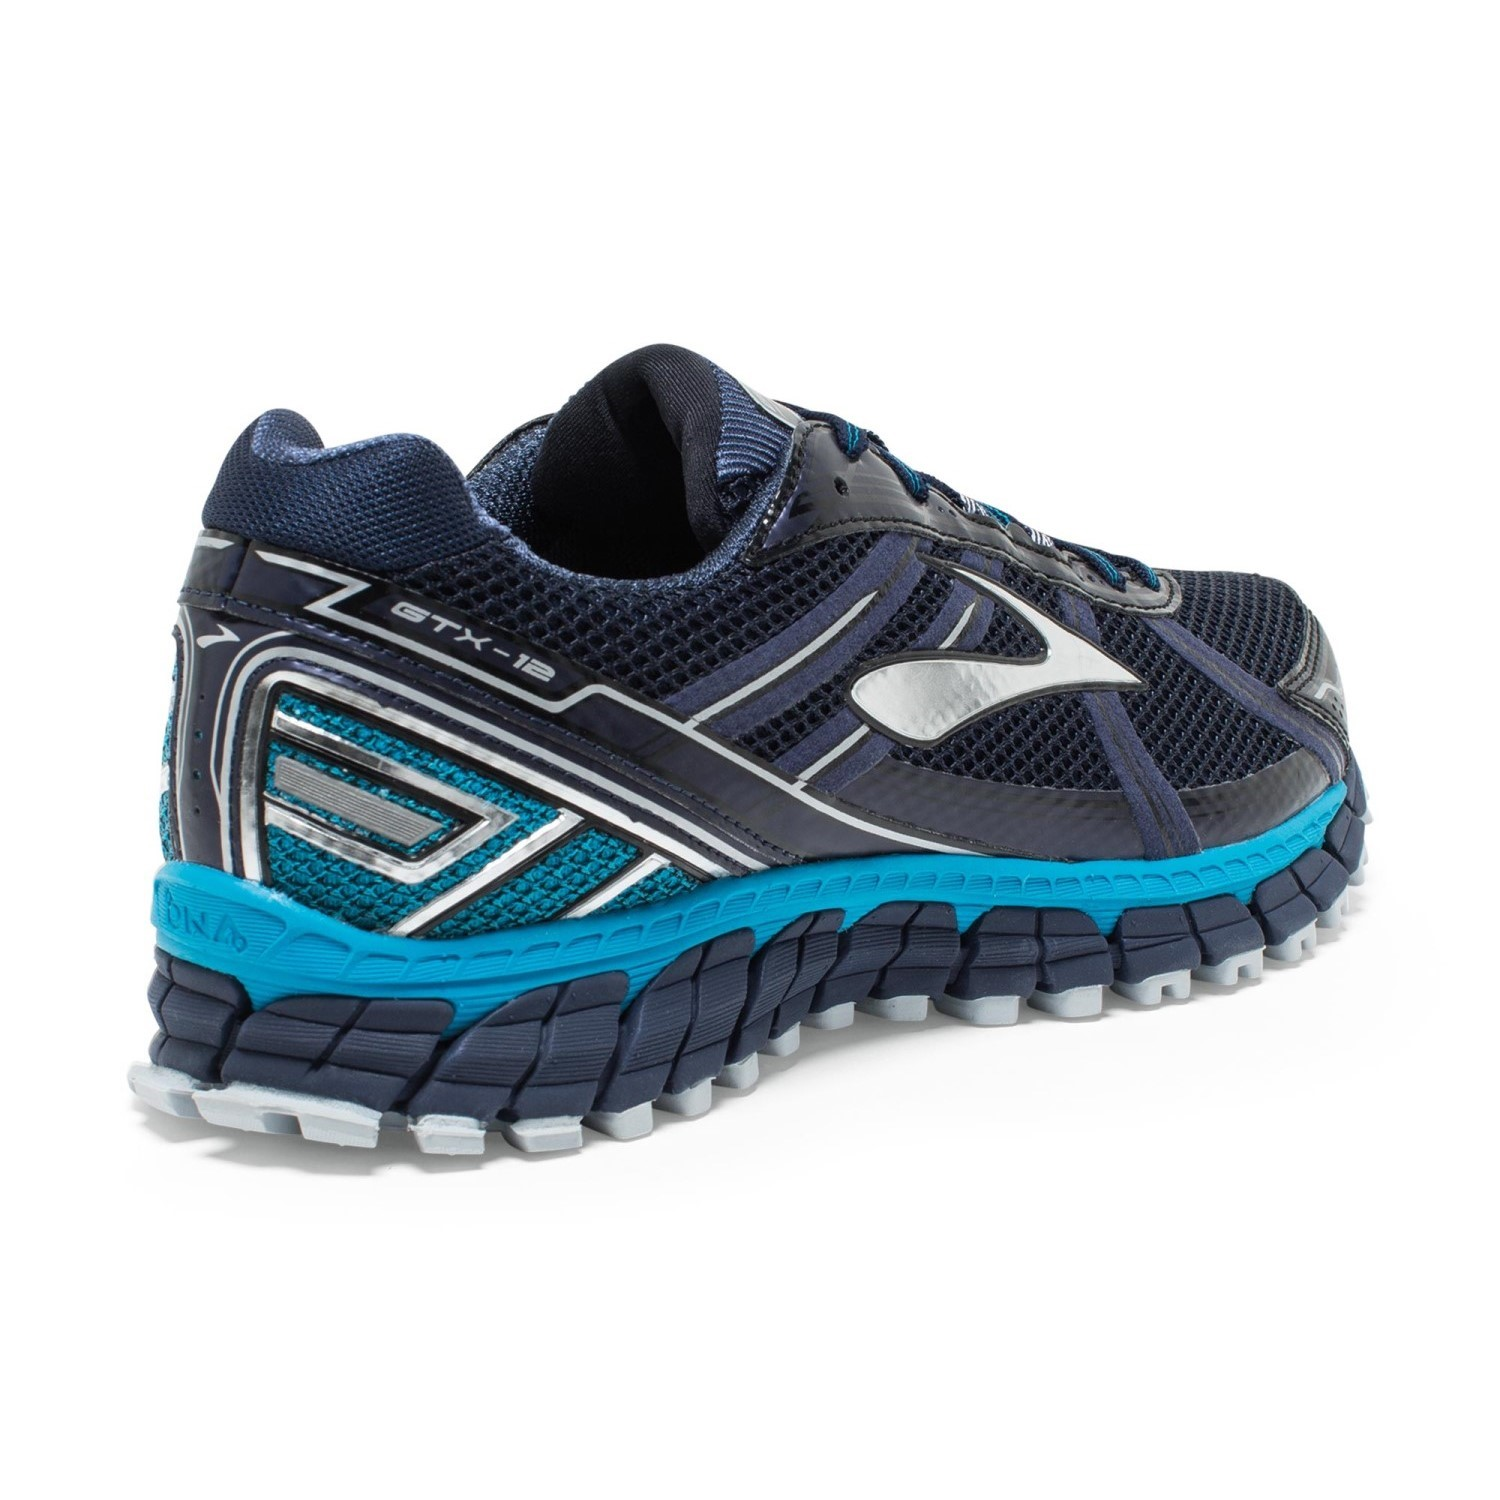 c52a5bc360475 Brooks Adrenaline ASR 12 GTX - Mens Trail Running Shoes - Peacoat Atomic  Blue